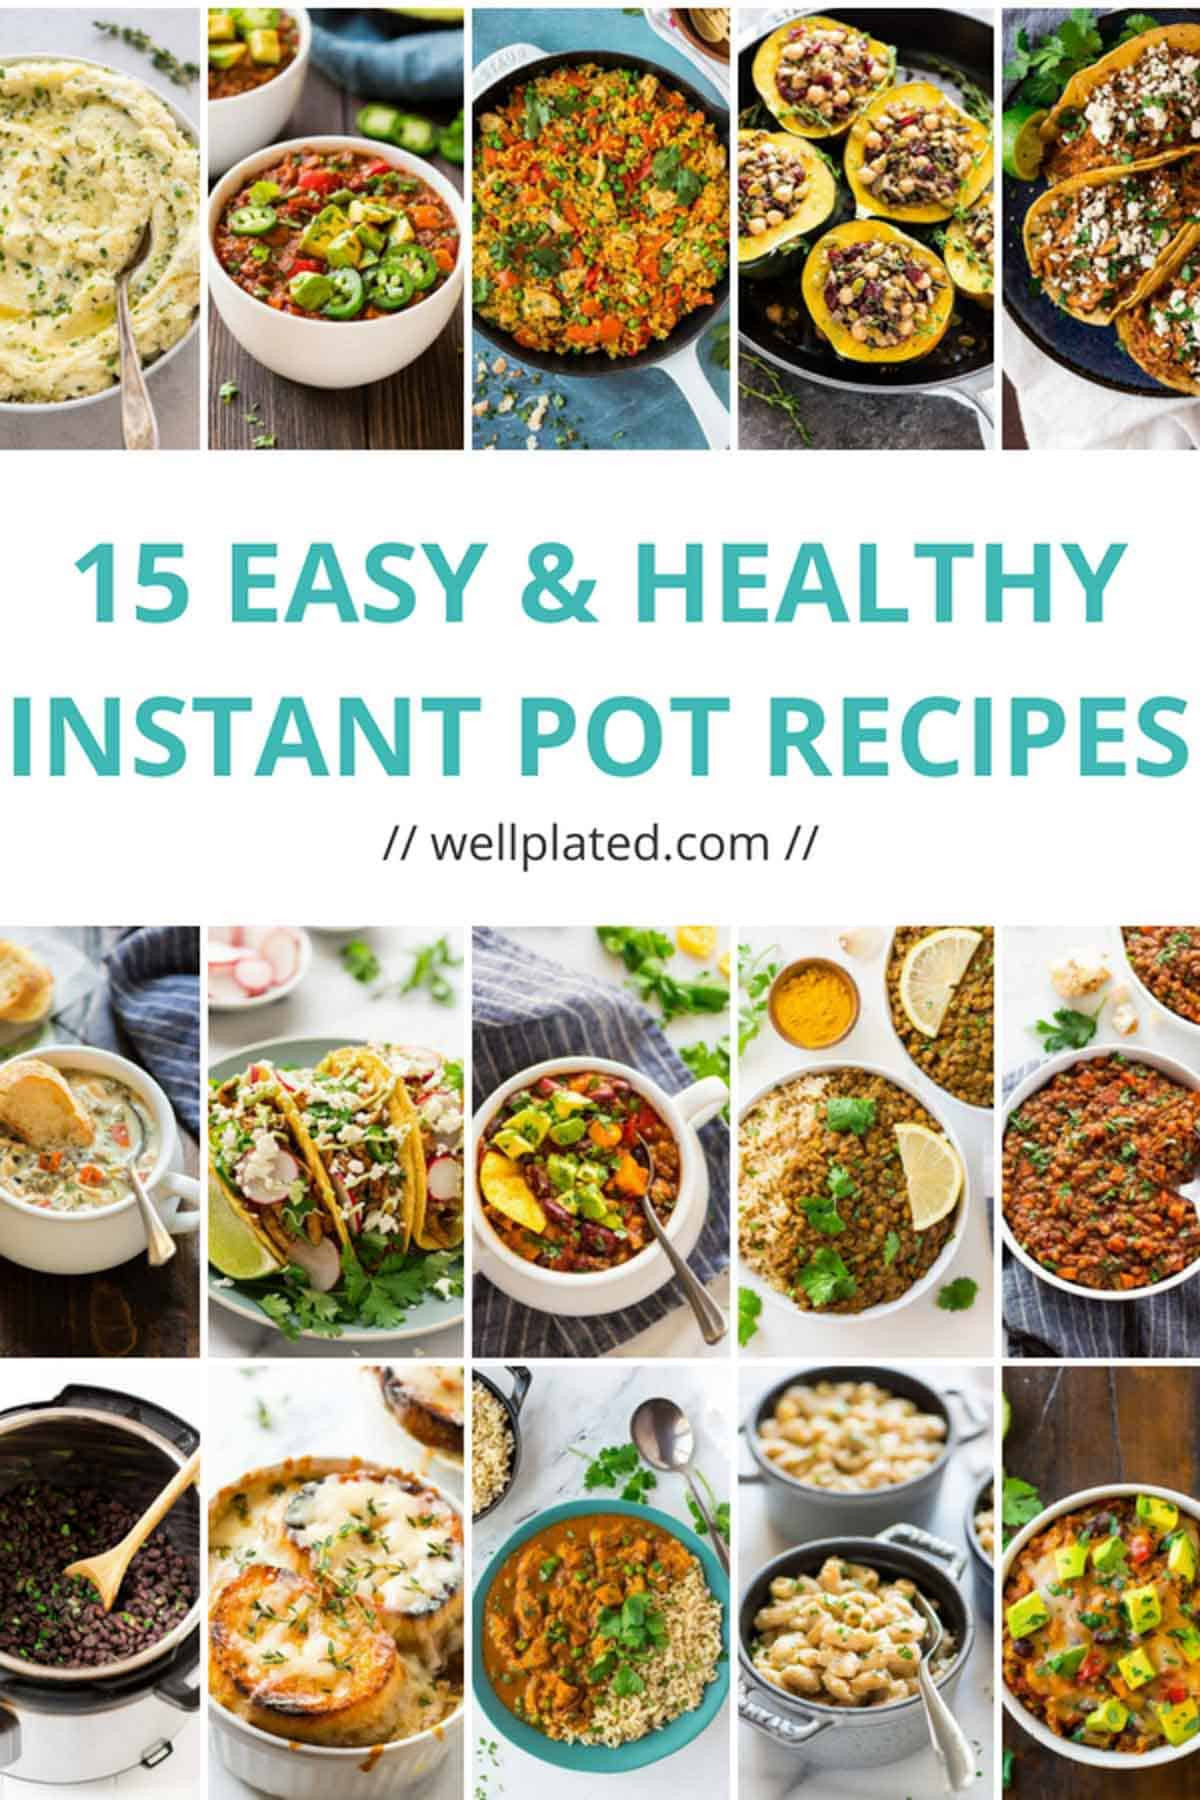 Healthy Recipes For Instant Pot  15 Healthy Instant Pot Recipes That Anyone Can Make